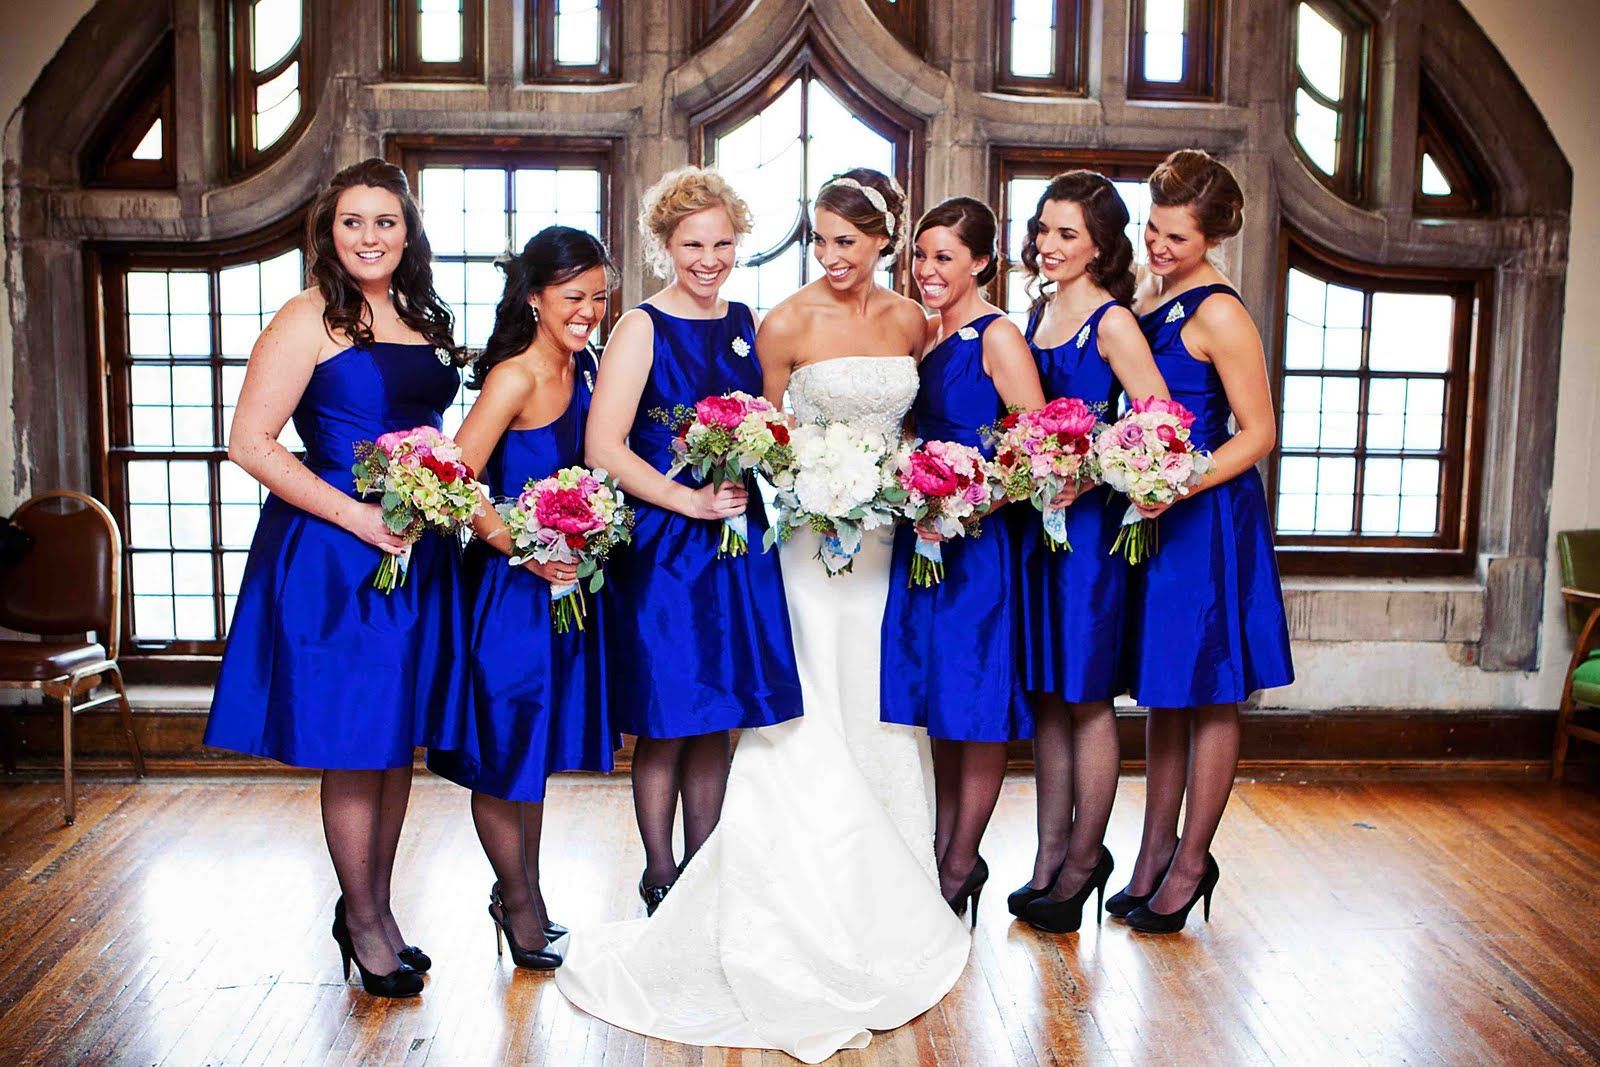 How to shop for a bridesmaid dress nicely wedding